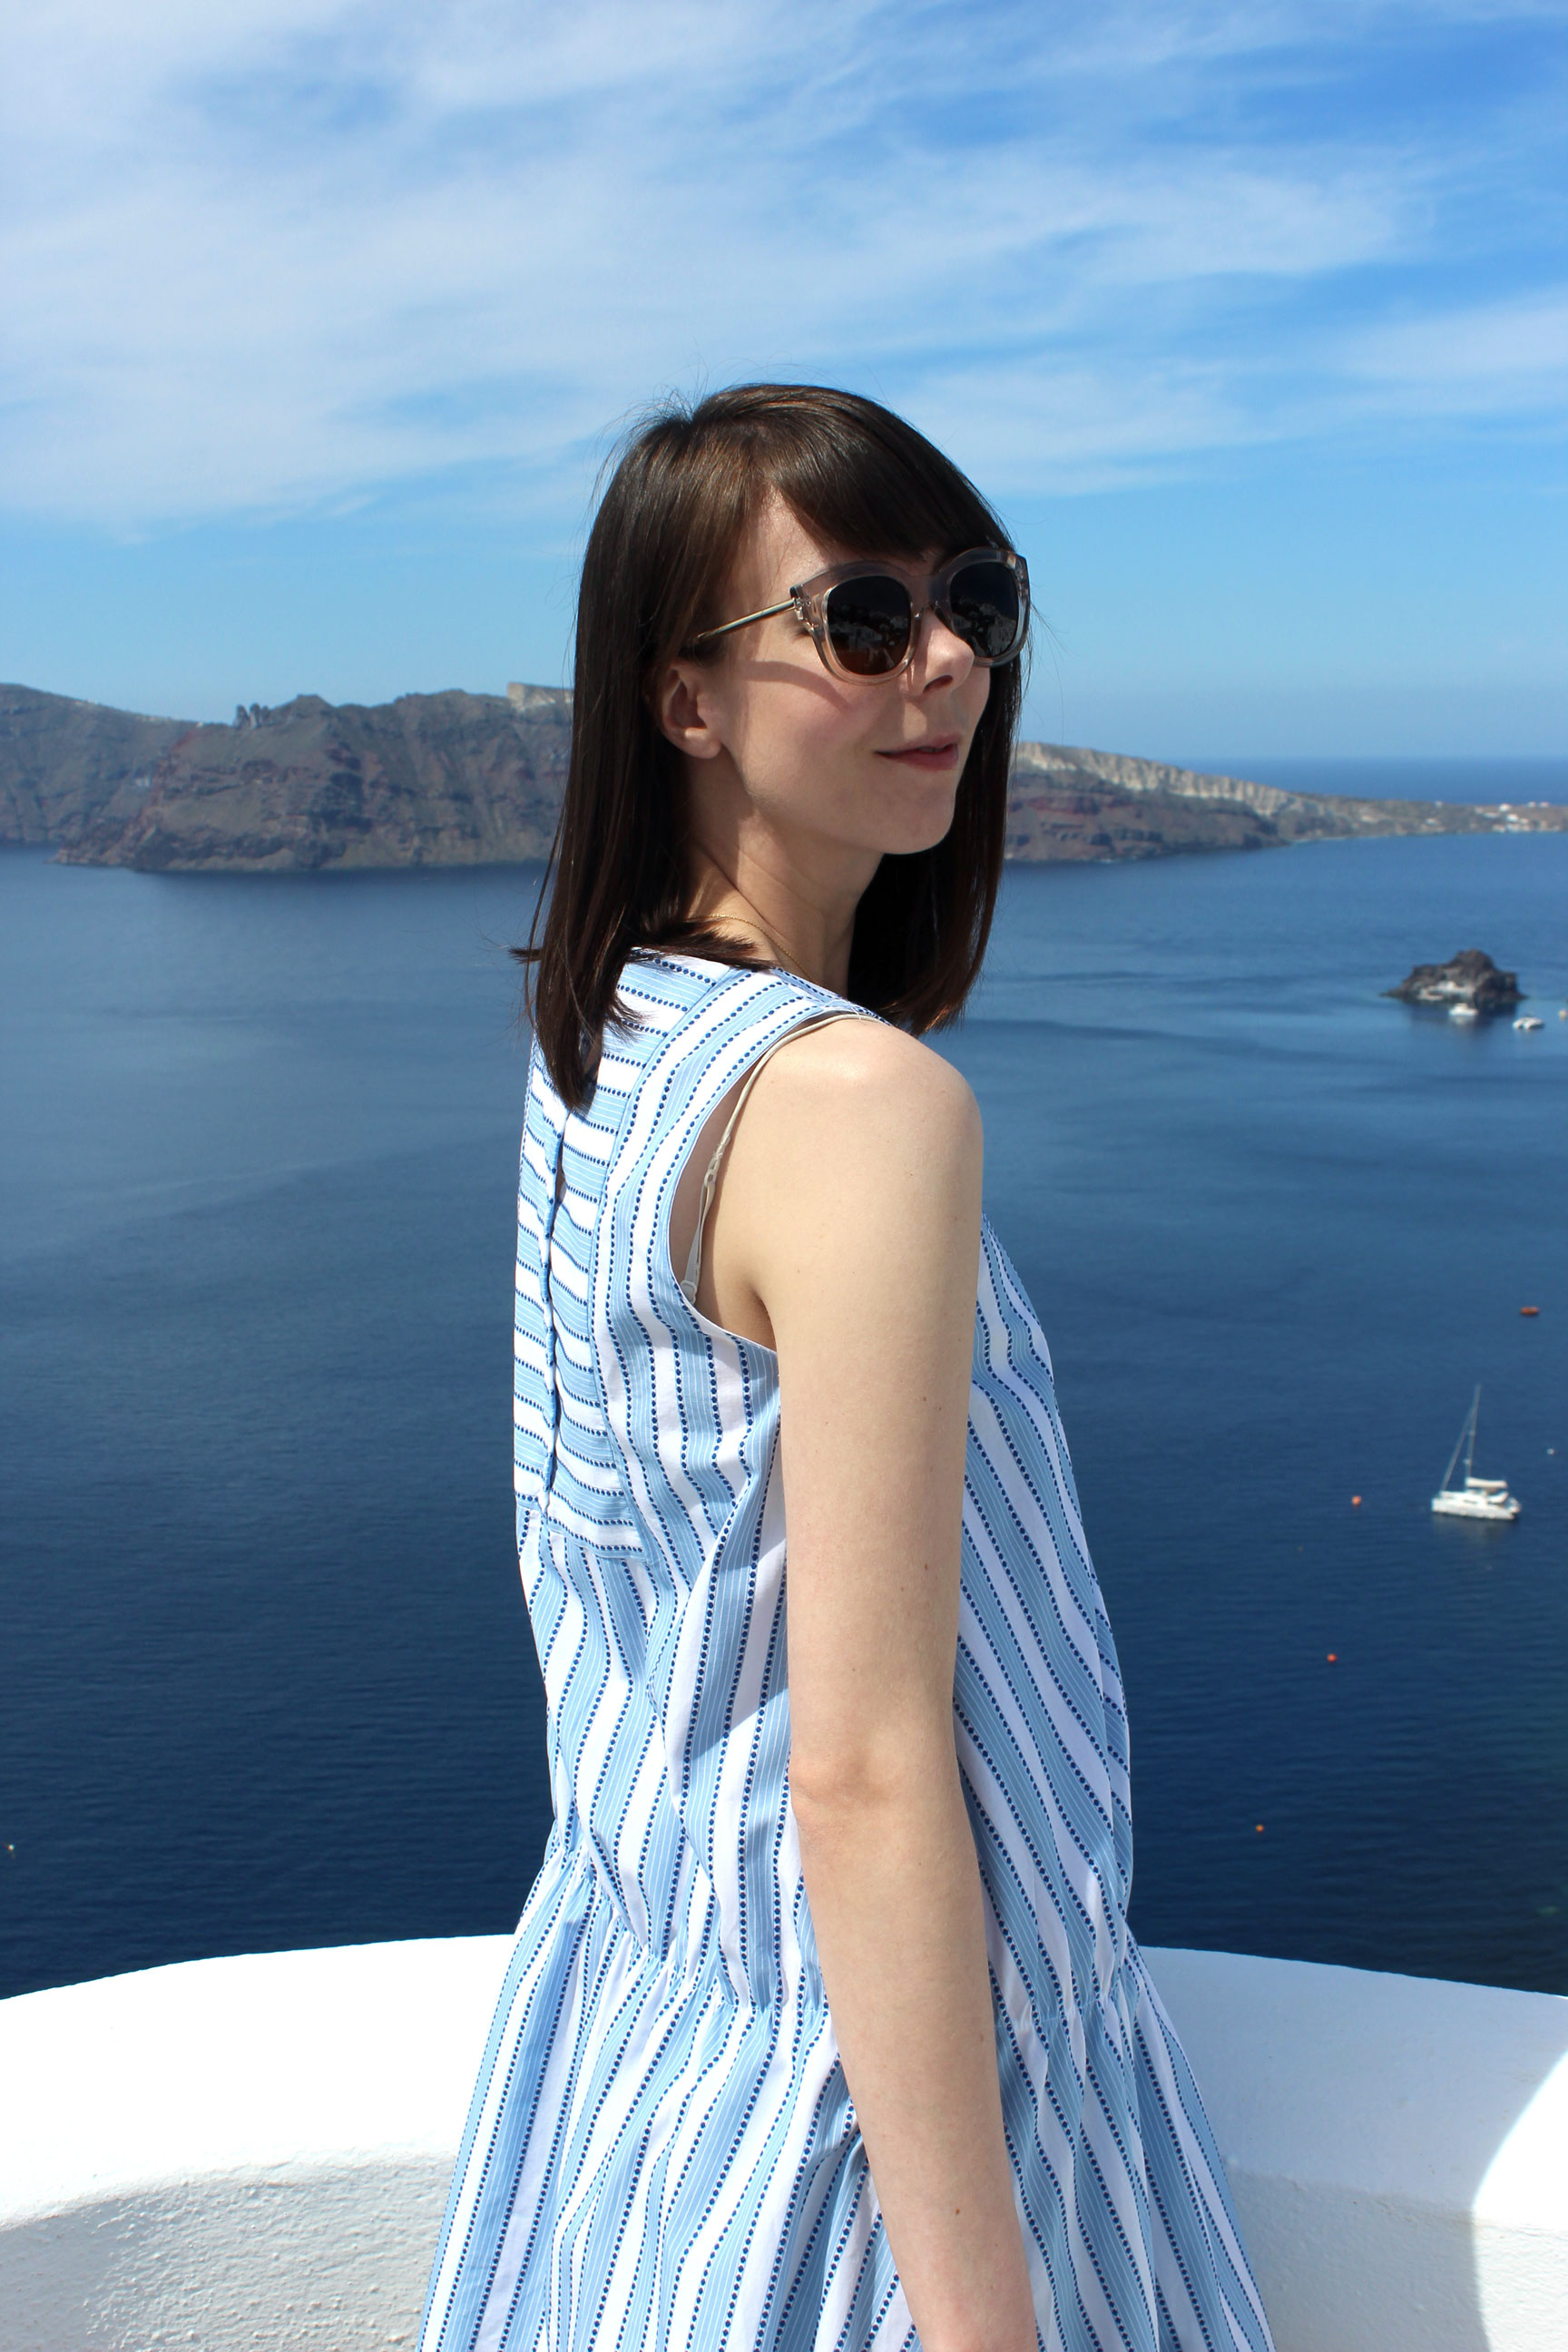 Wearing a Zara dress to match the blue skies and waters of Santorini.